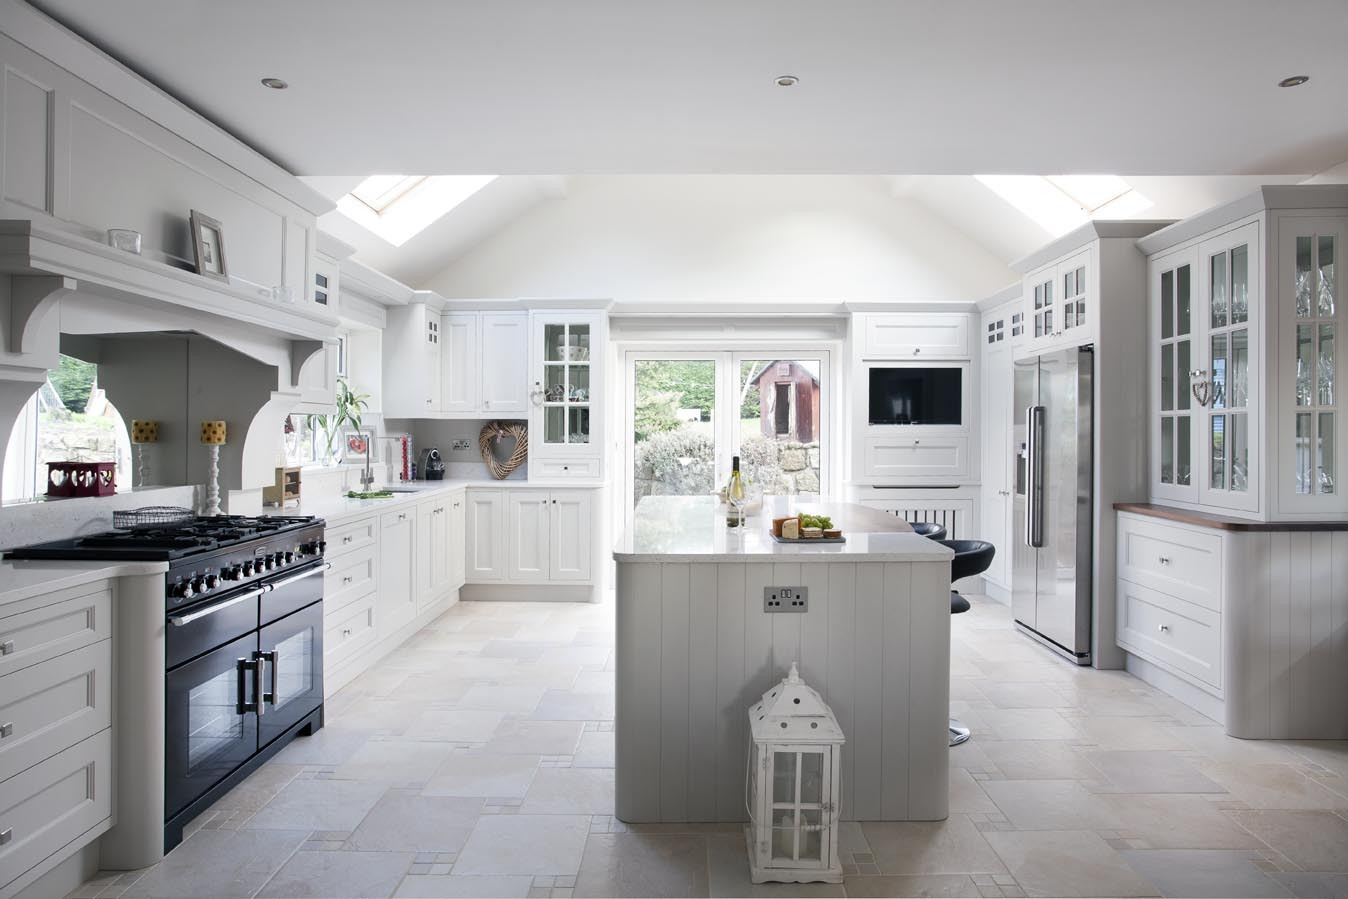 Cornforth white by woodale designs ireland for Kitchen cabinets ireland